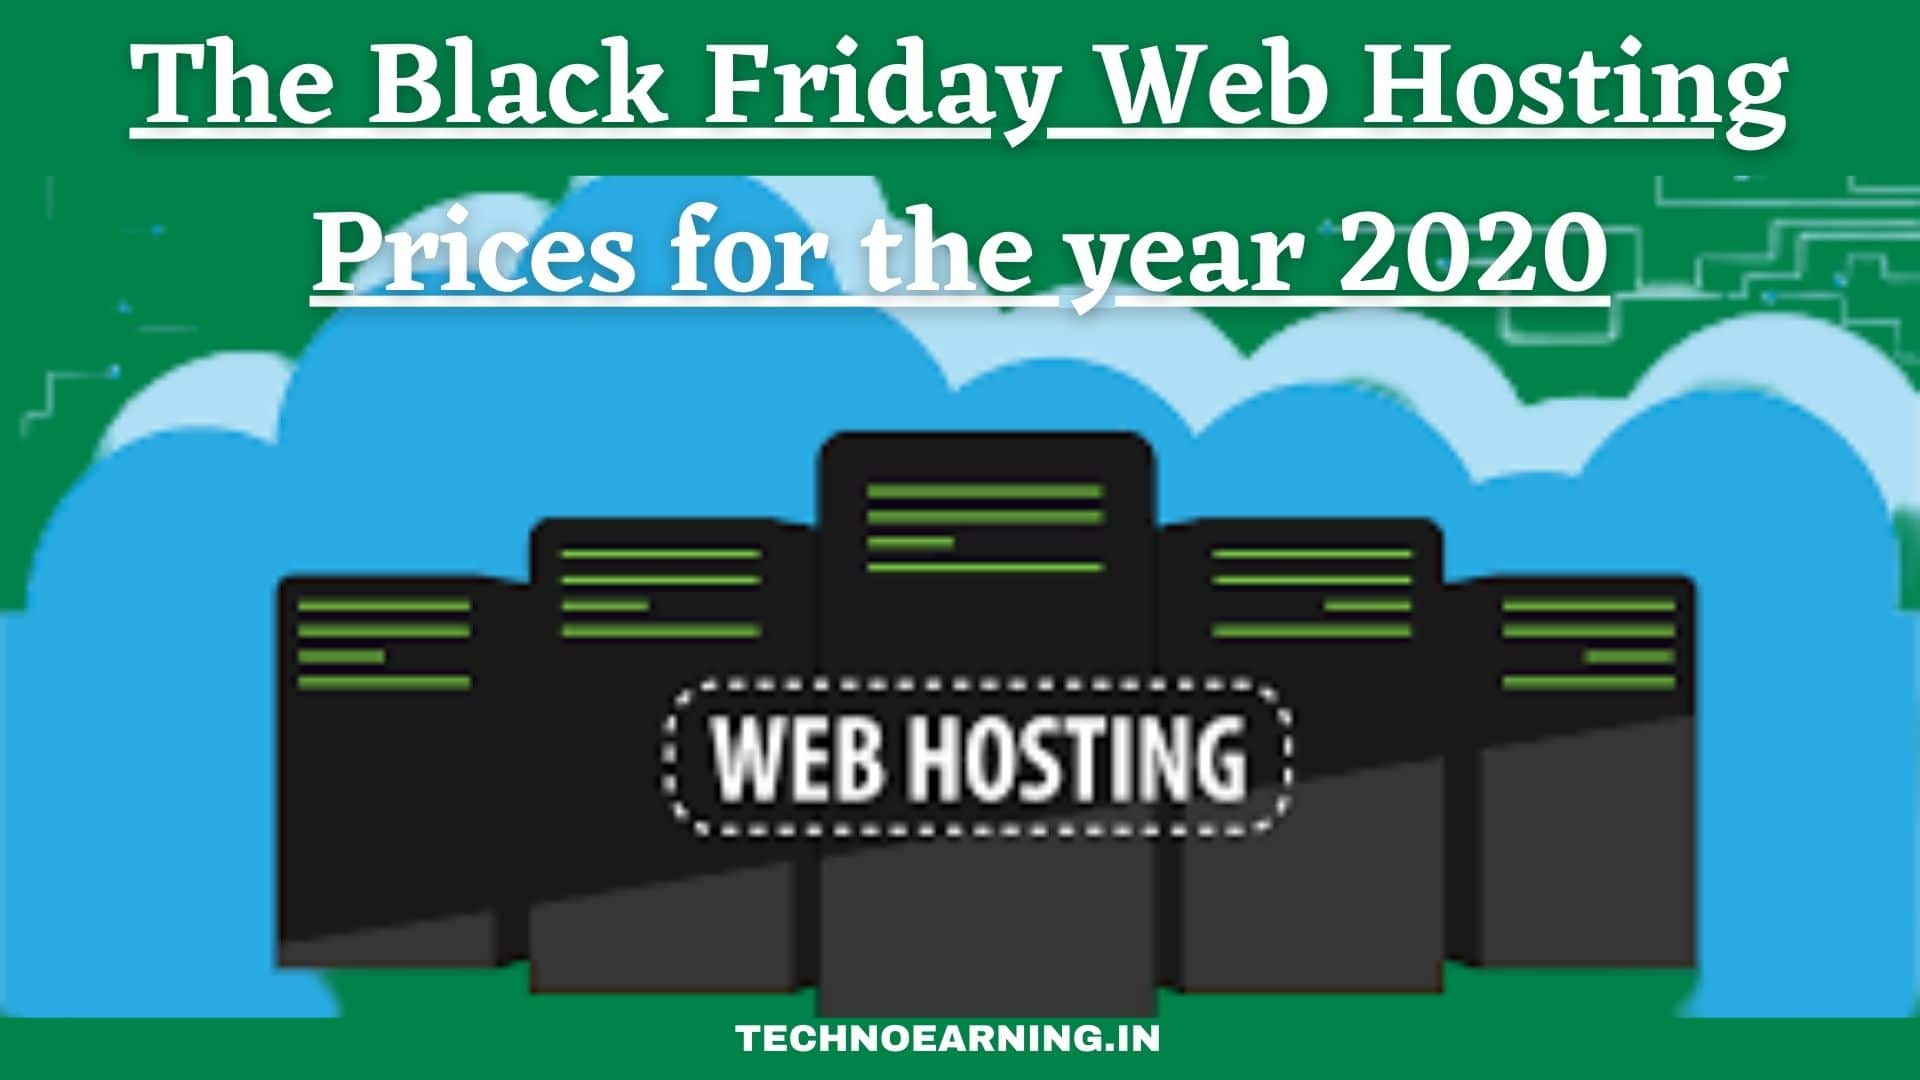 The Black Friday Web Hosting Prices for the year 2020 is live - TechnoEarning